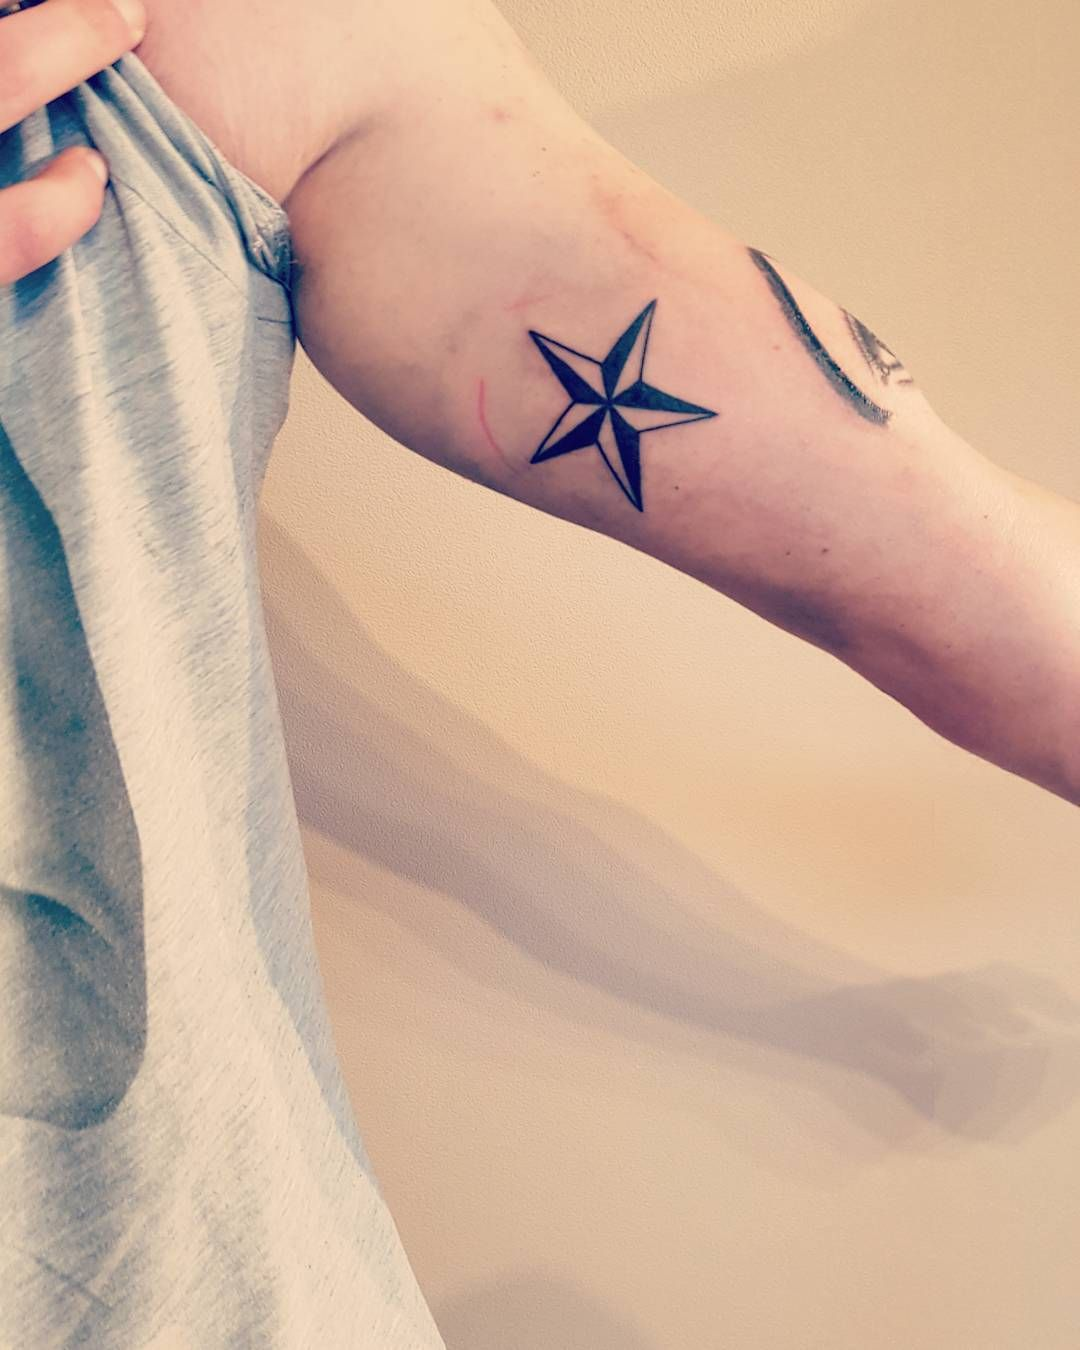 55 Unique Star Tattoo Ideas to Take Body Art to a New